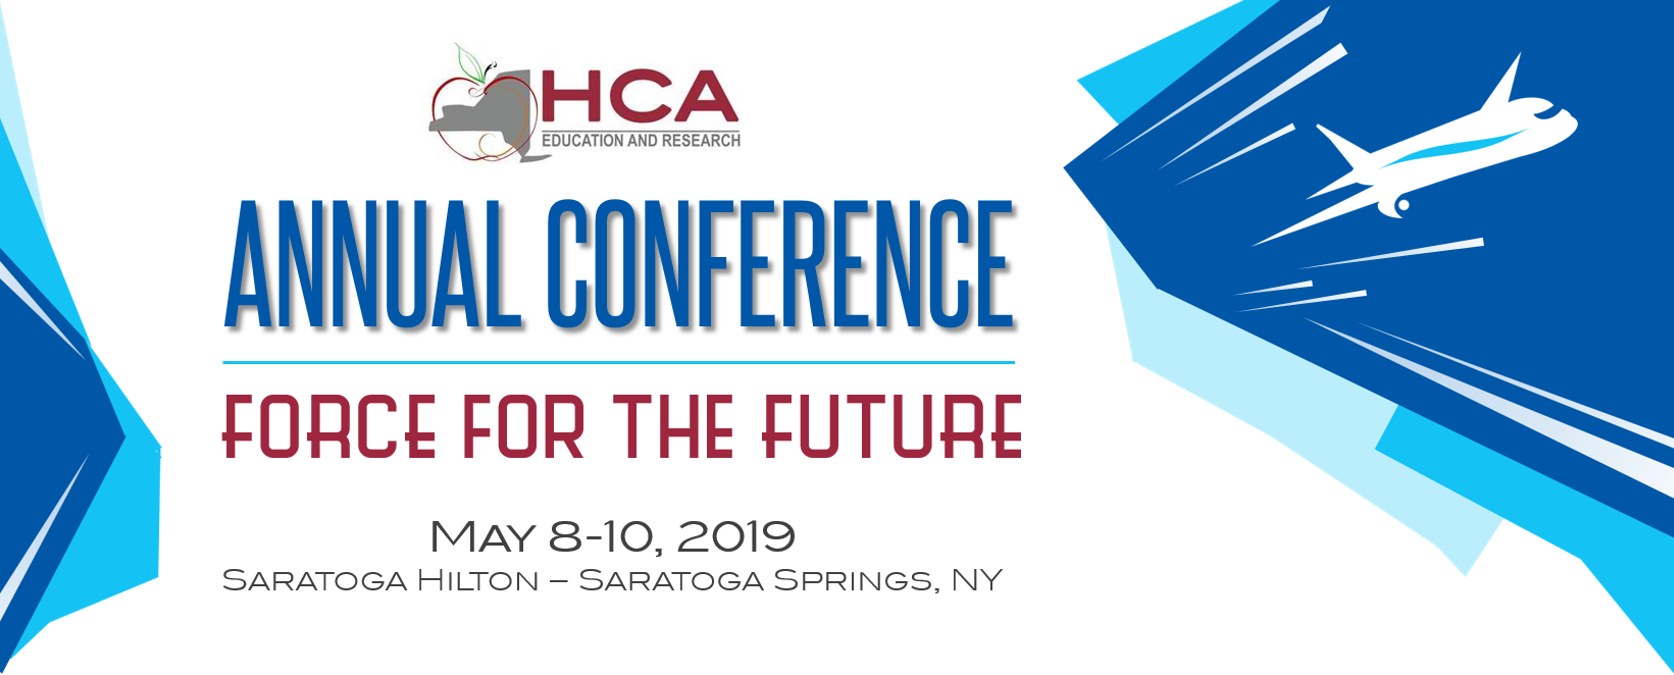 HCA Annual Conference